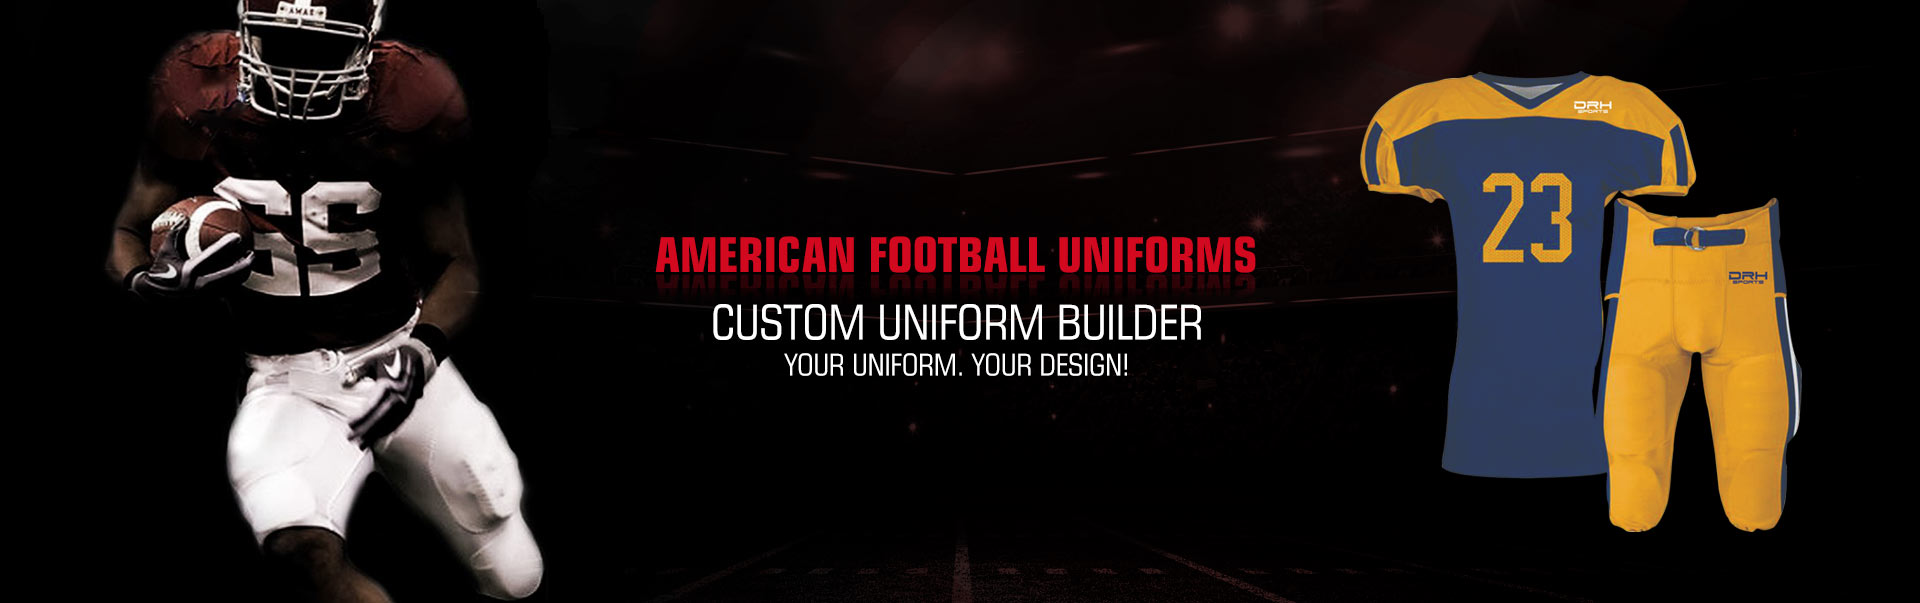 American Football Uniform Wholesaler, Suppliers in Krefeld